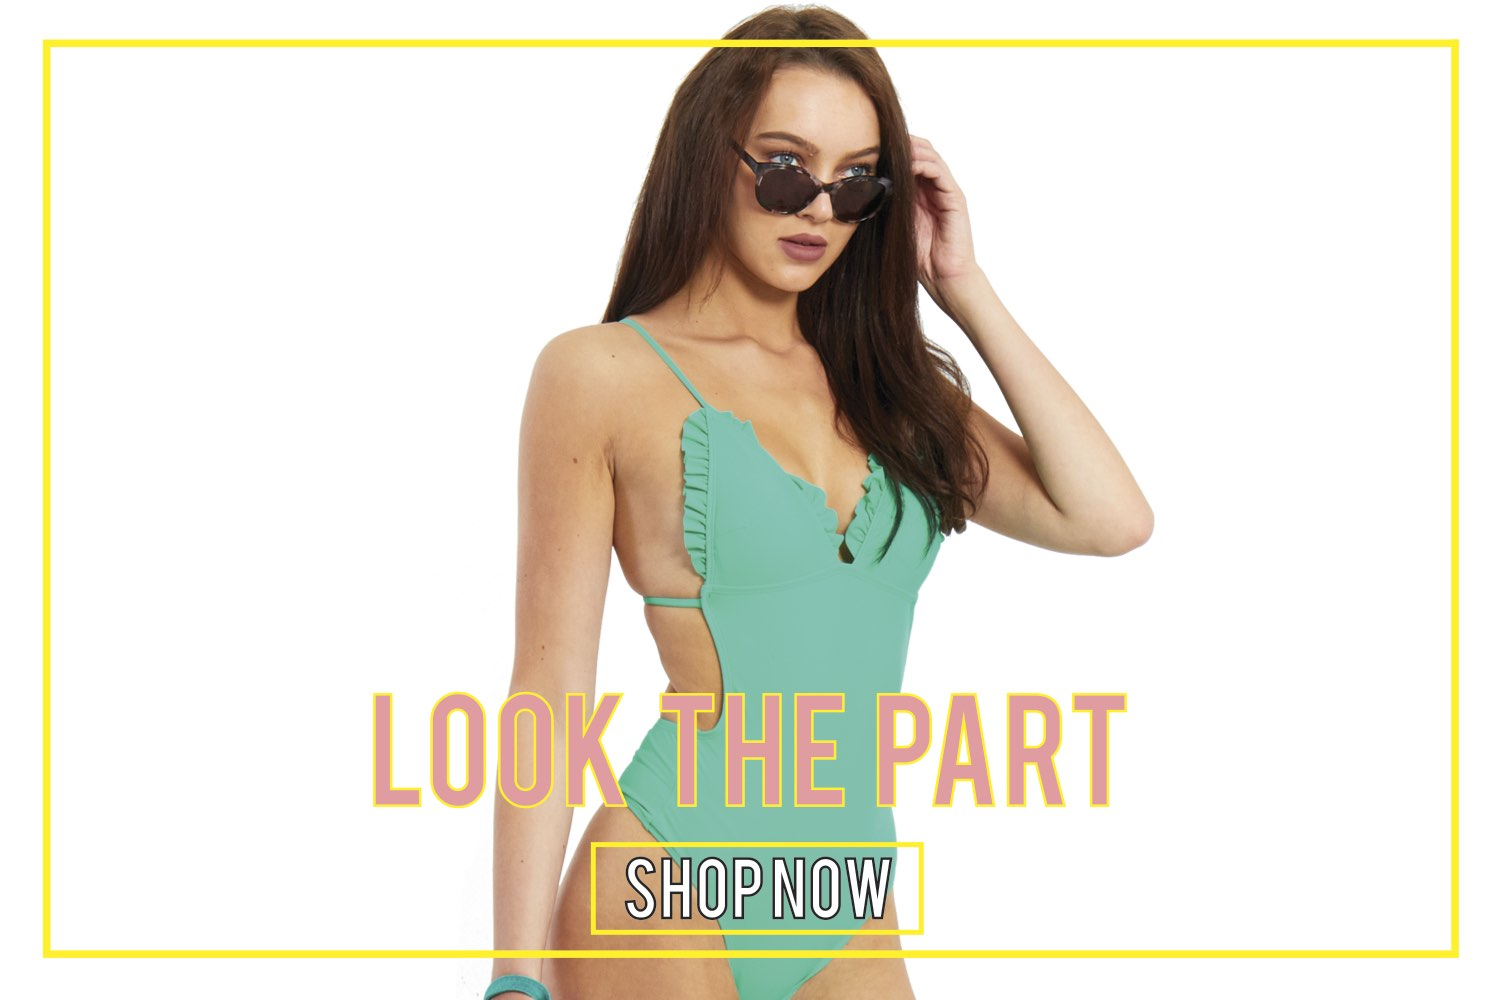 Wholesale Clothing UK | Men's & Women's Wholesale Clothes | J5 Fashion